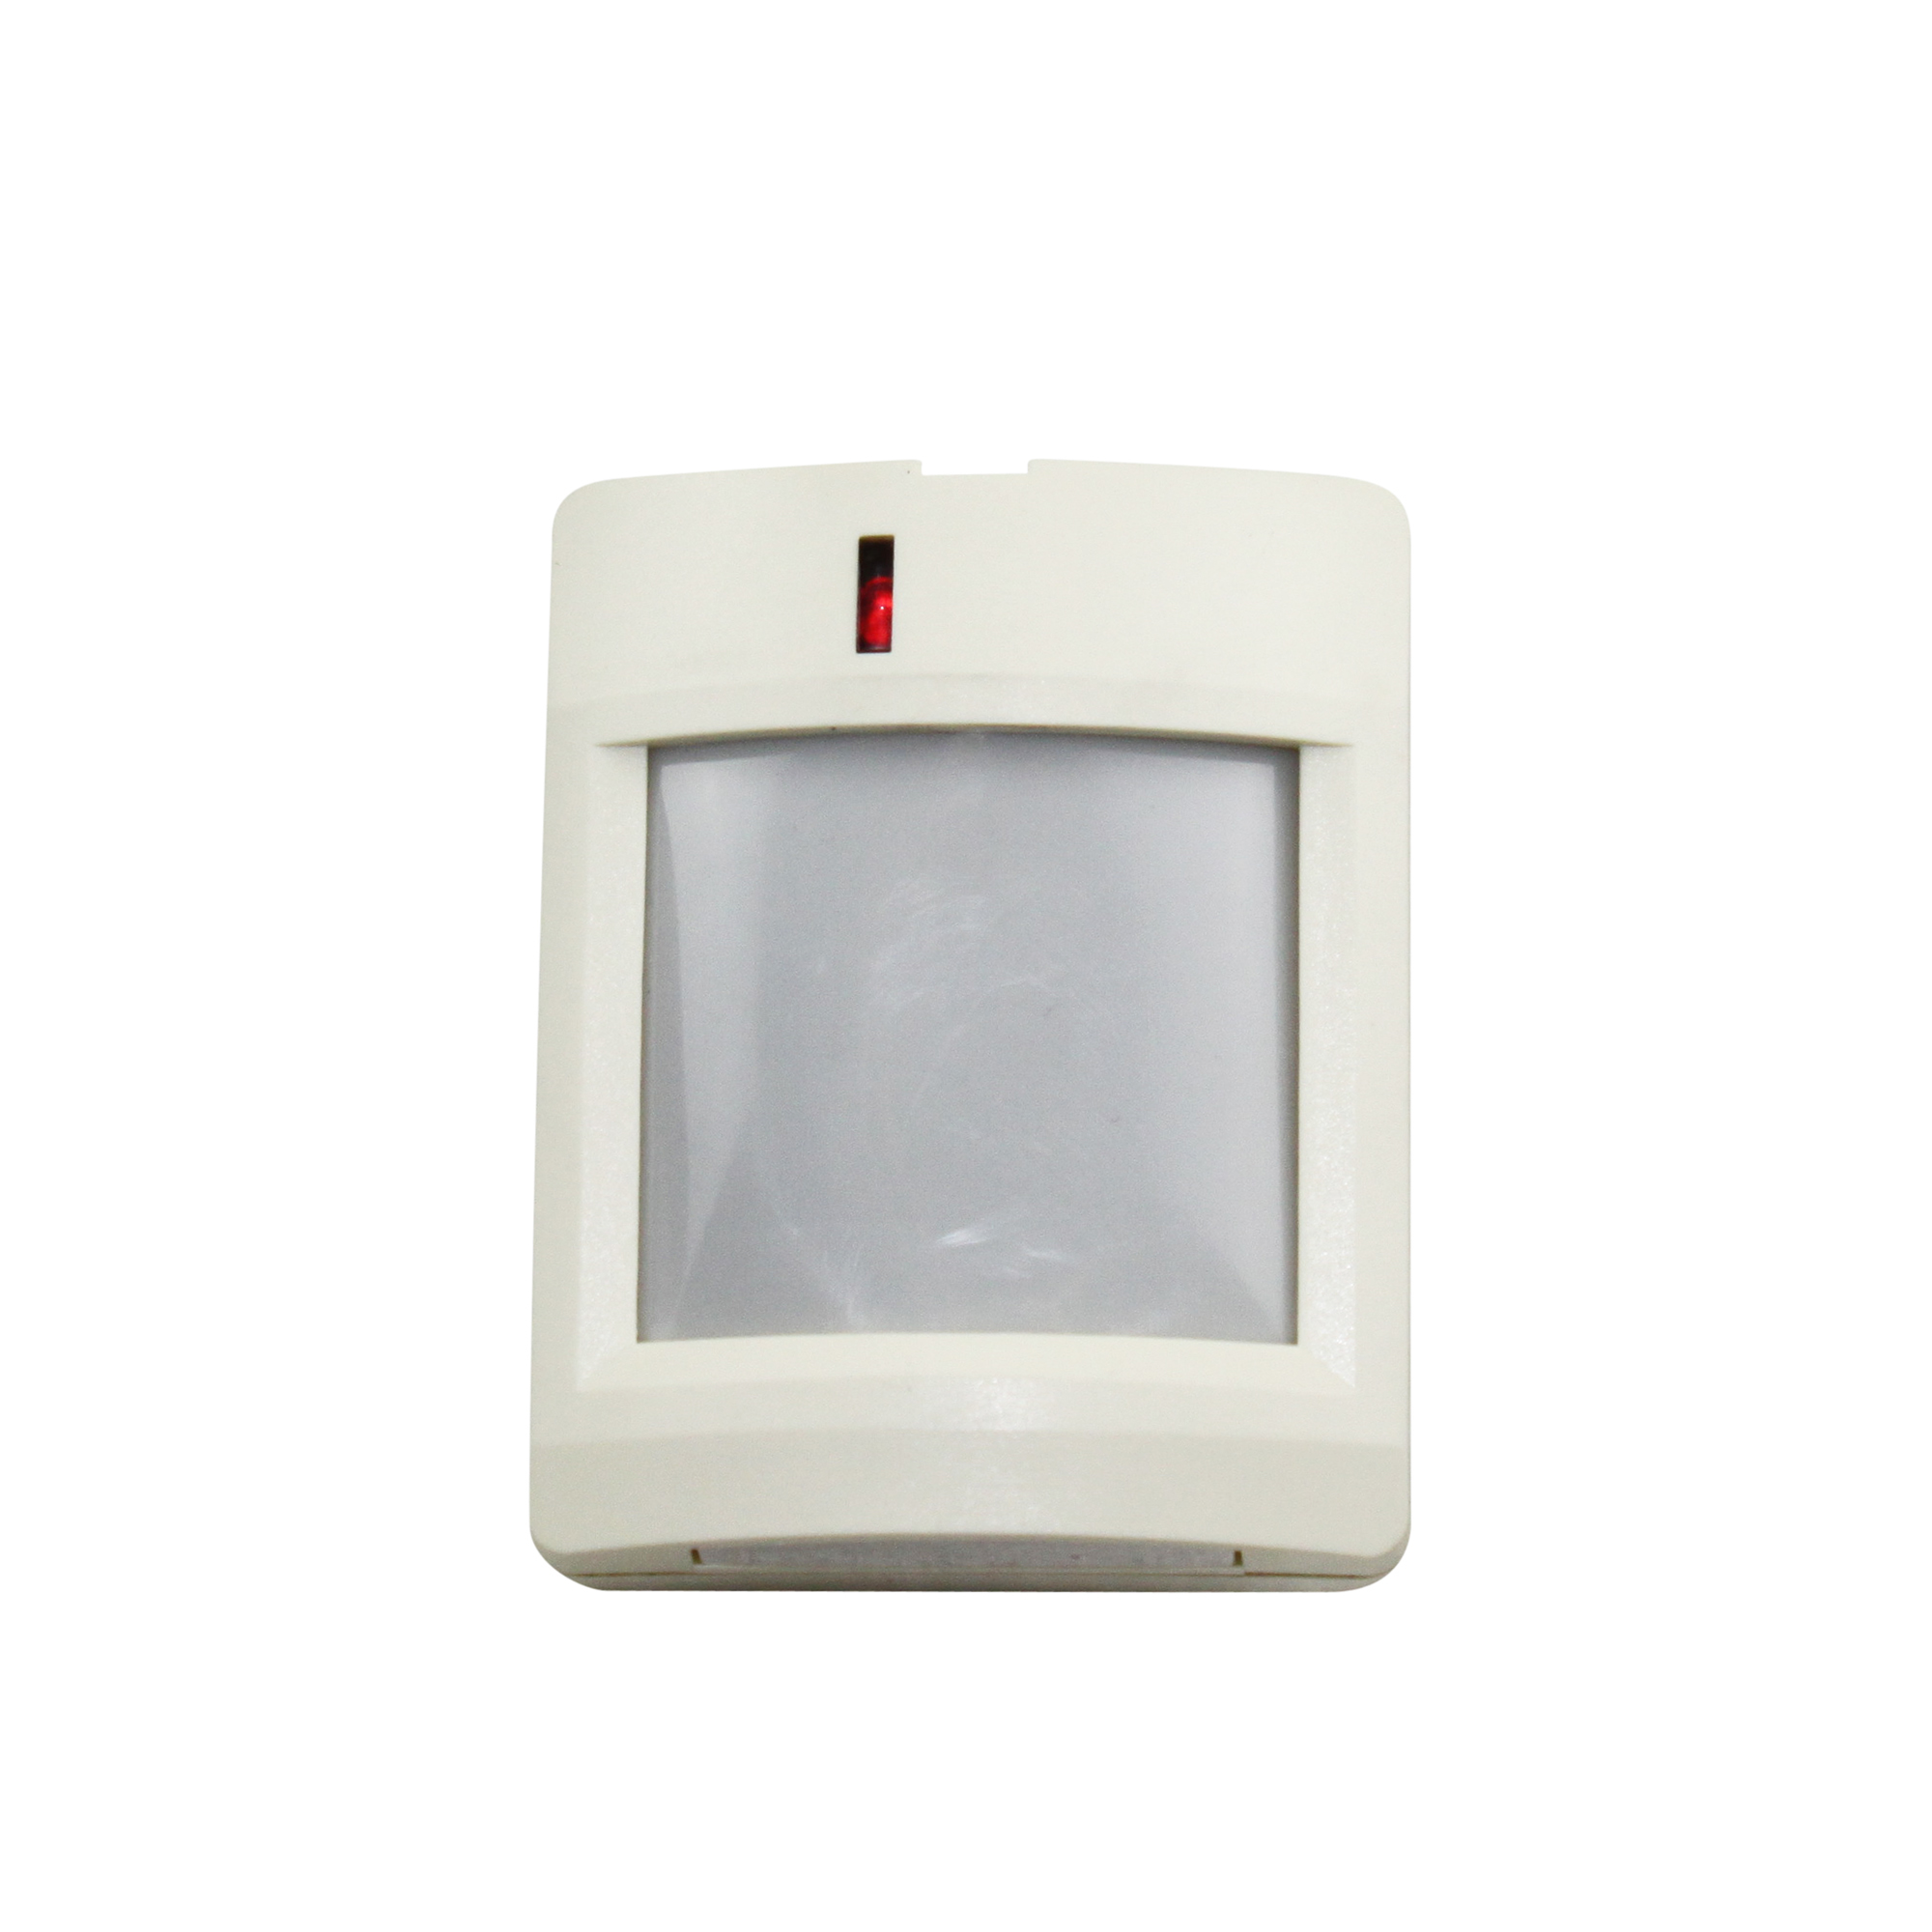 Bosch Detection Systems Ds915 Security Cctv Occupancy